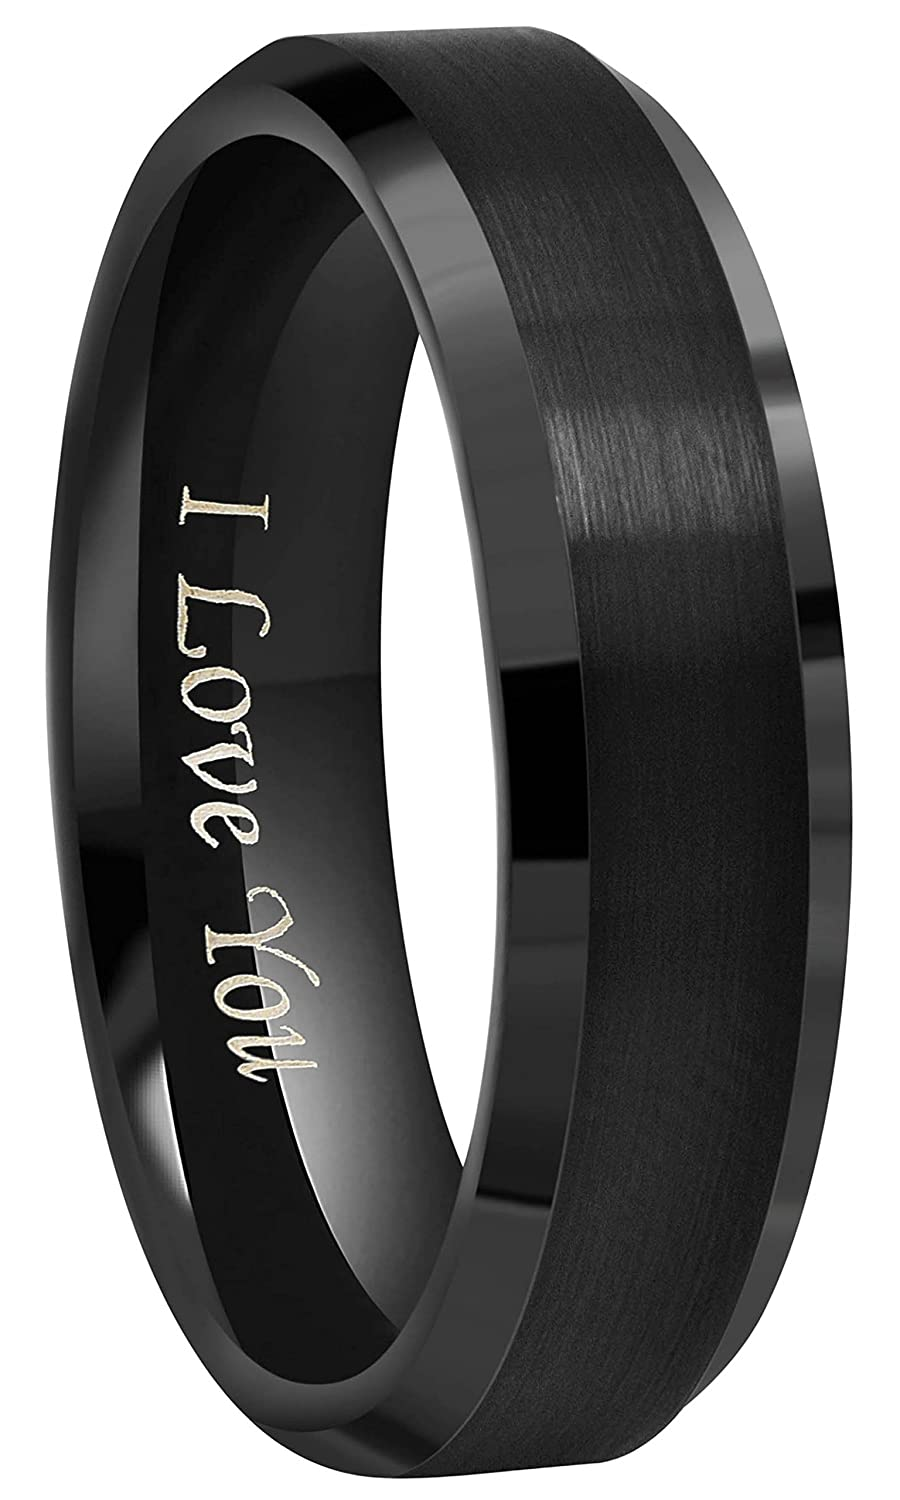 Crownal 6mm 8mm 10mm Black Tungsten Wedding Band Ring Engraved I Love You Men Women Brushed Finish Beveled Edges Size 4 To 17 Amazon: Black Tungsten Wedding Band Cross At Websimilar.org